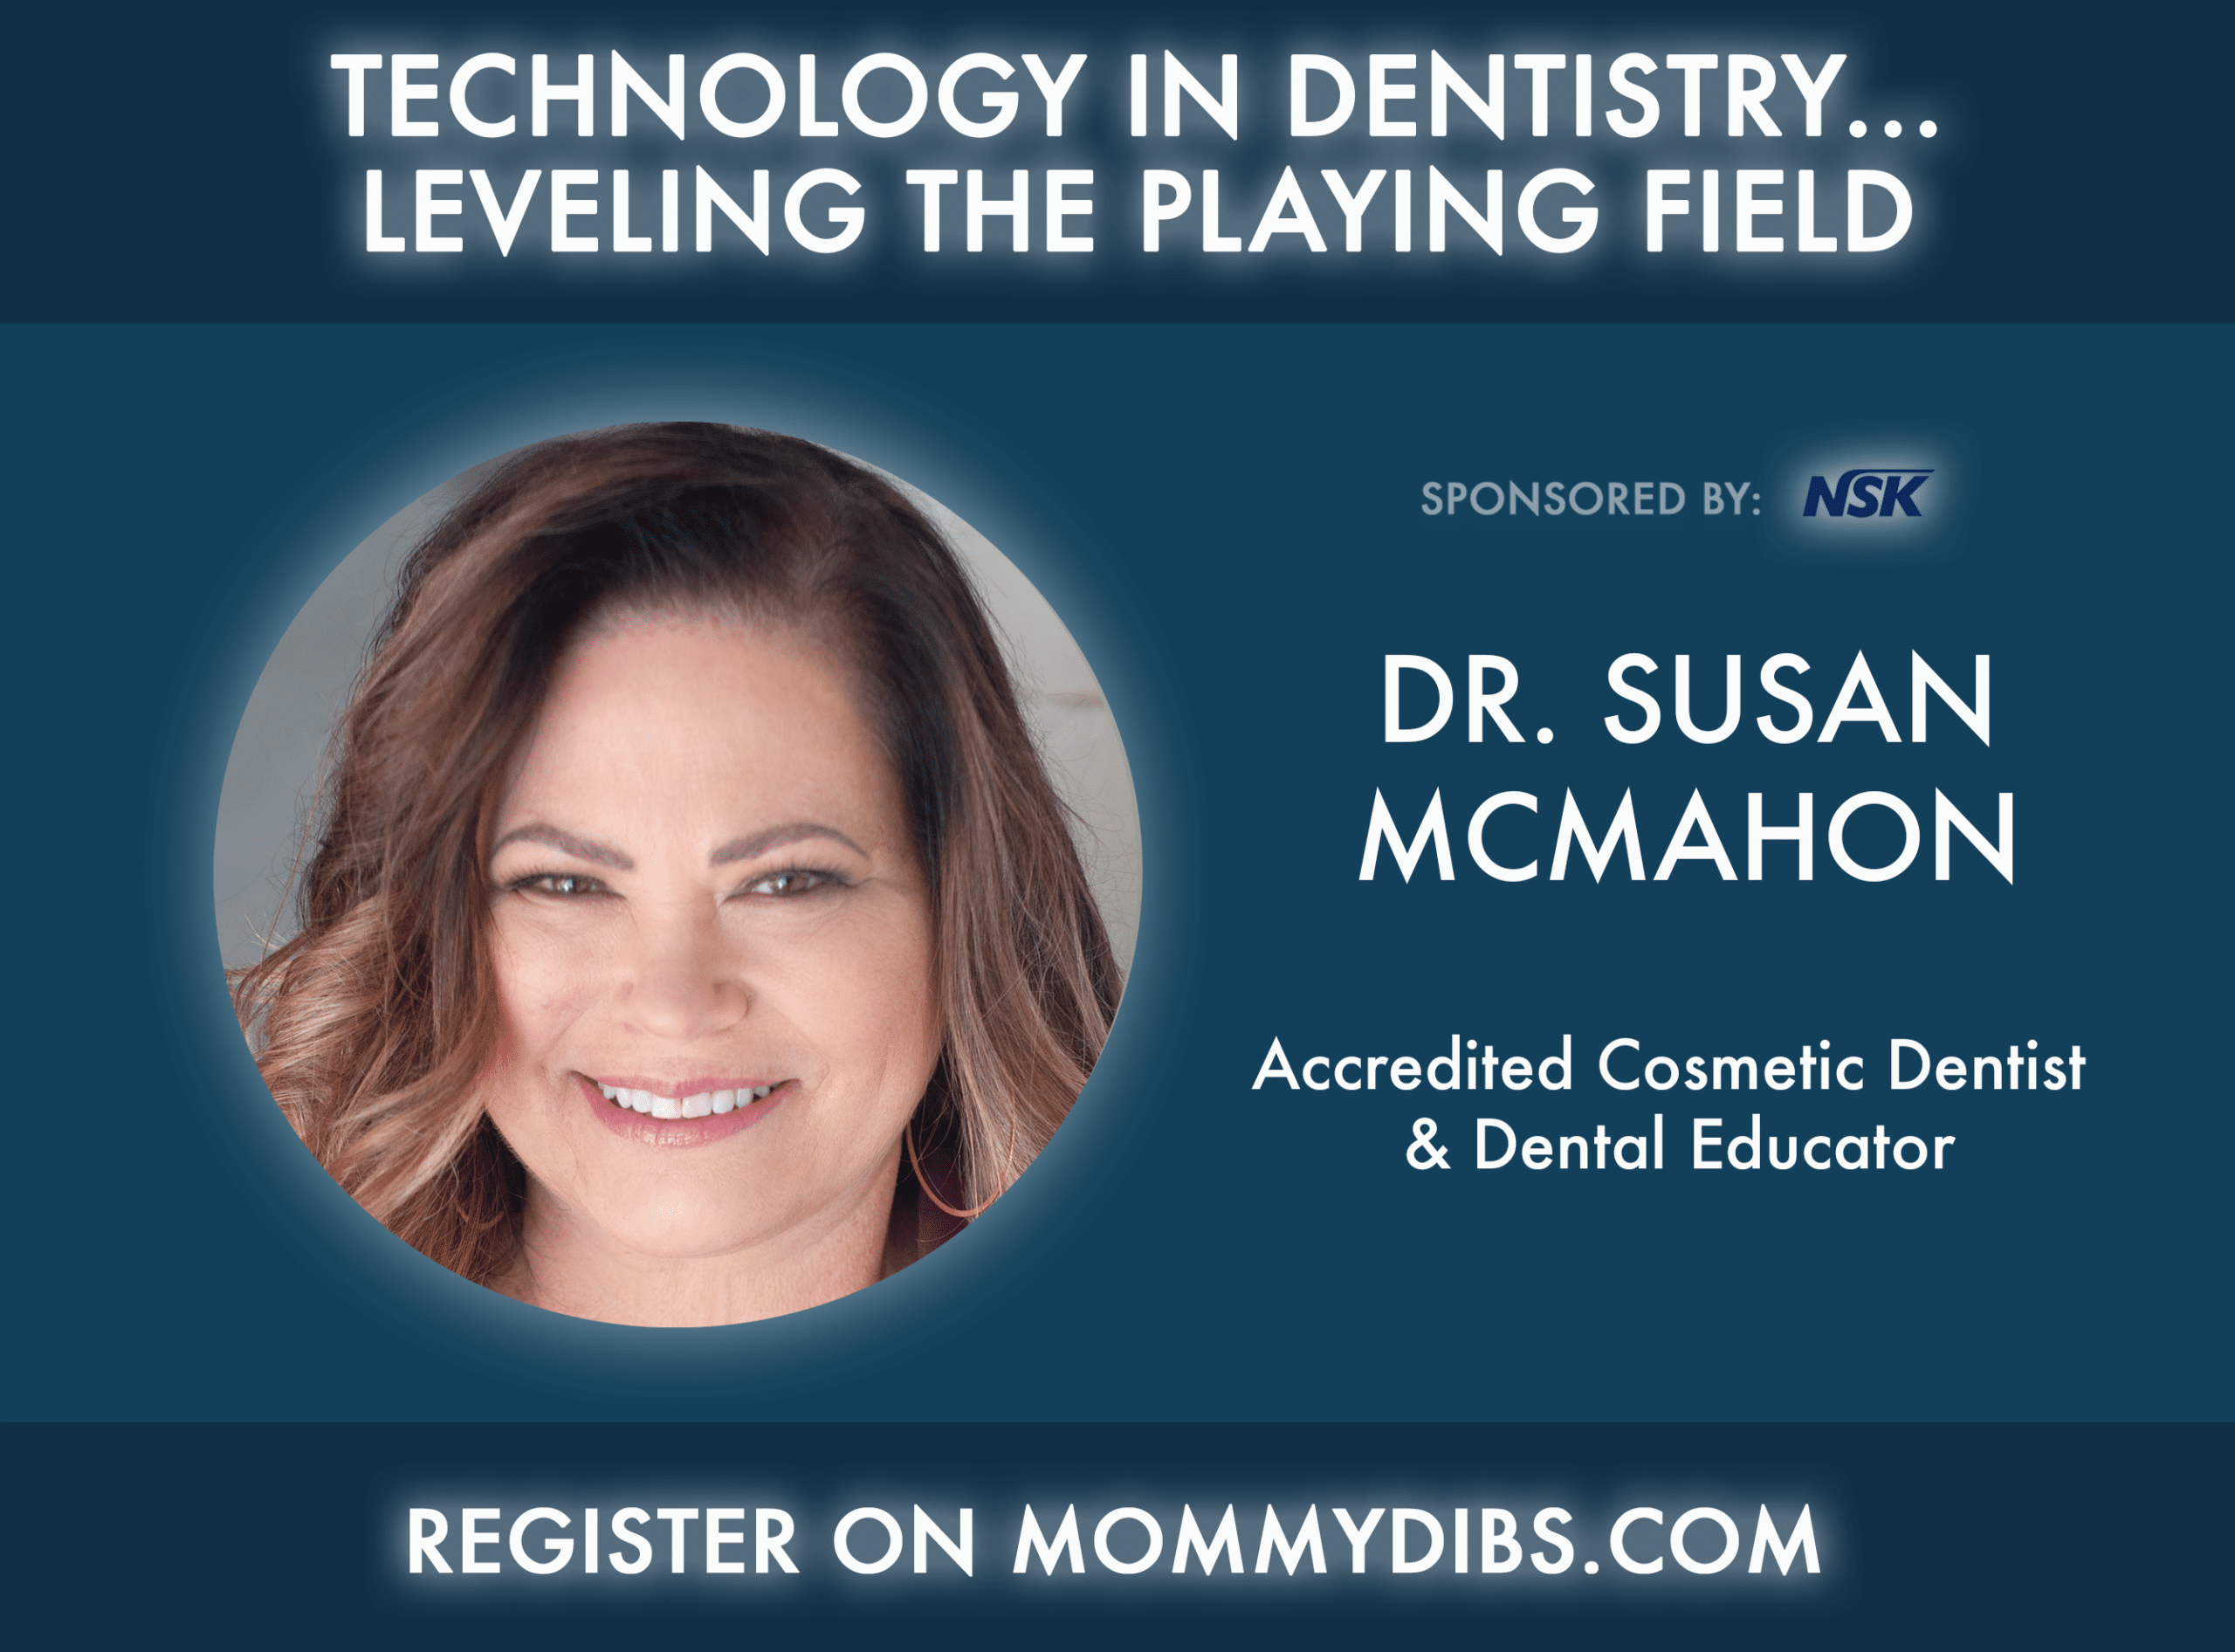 Technology in Dentistry…leveling the playing field